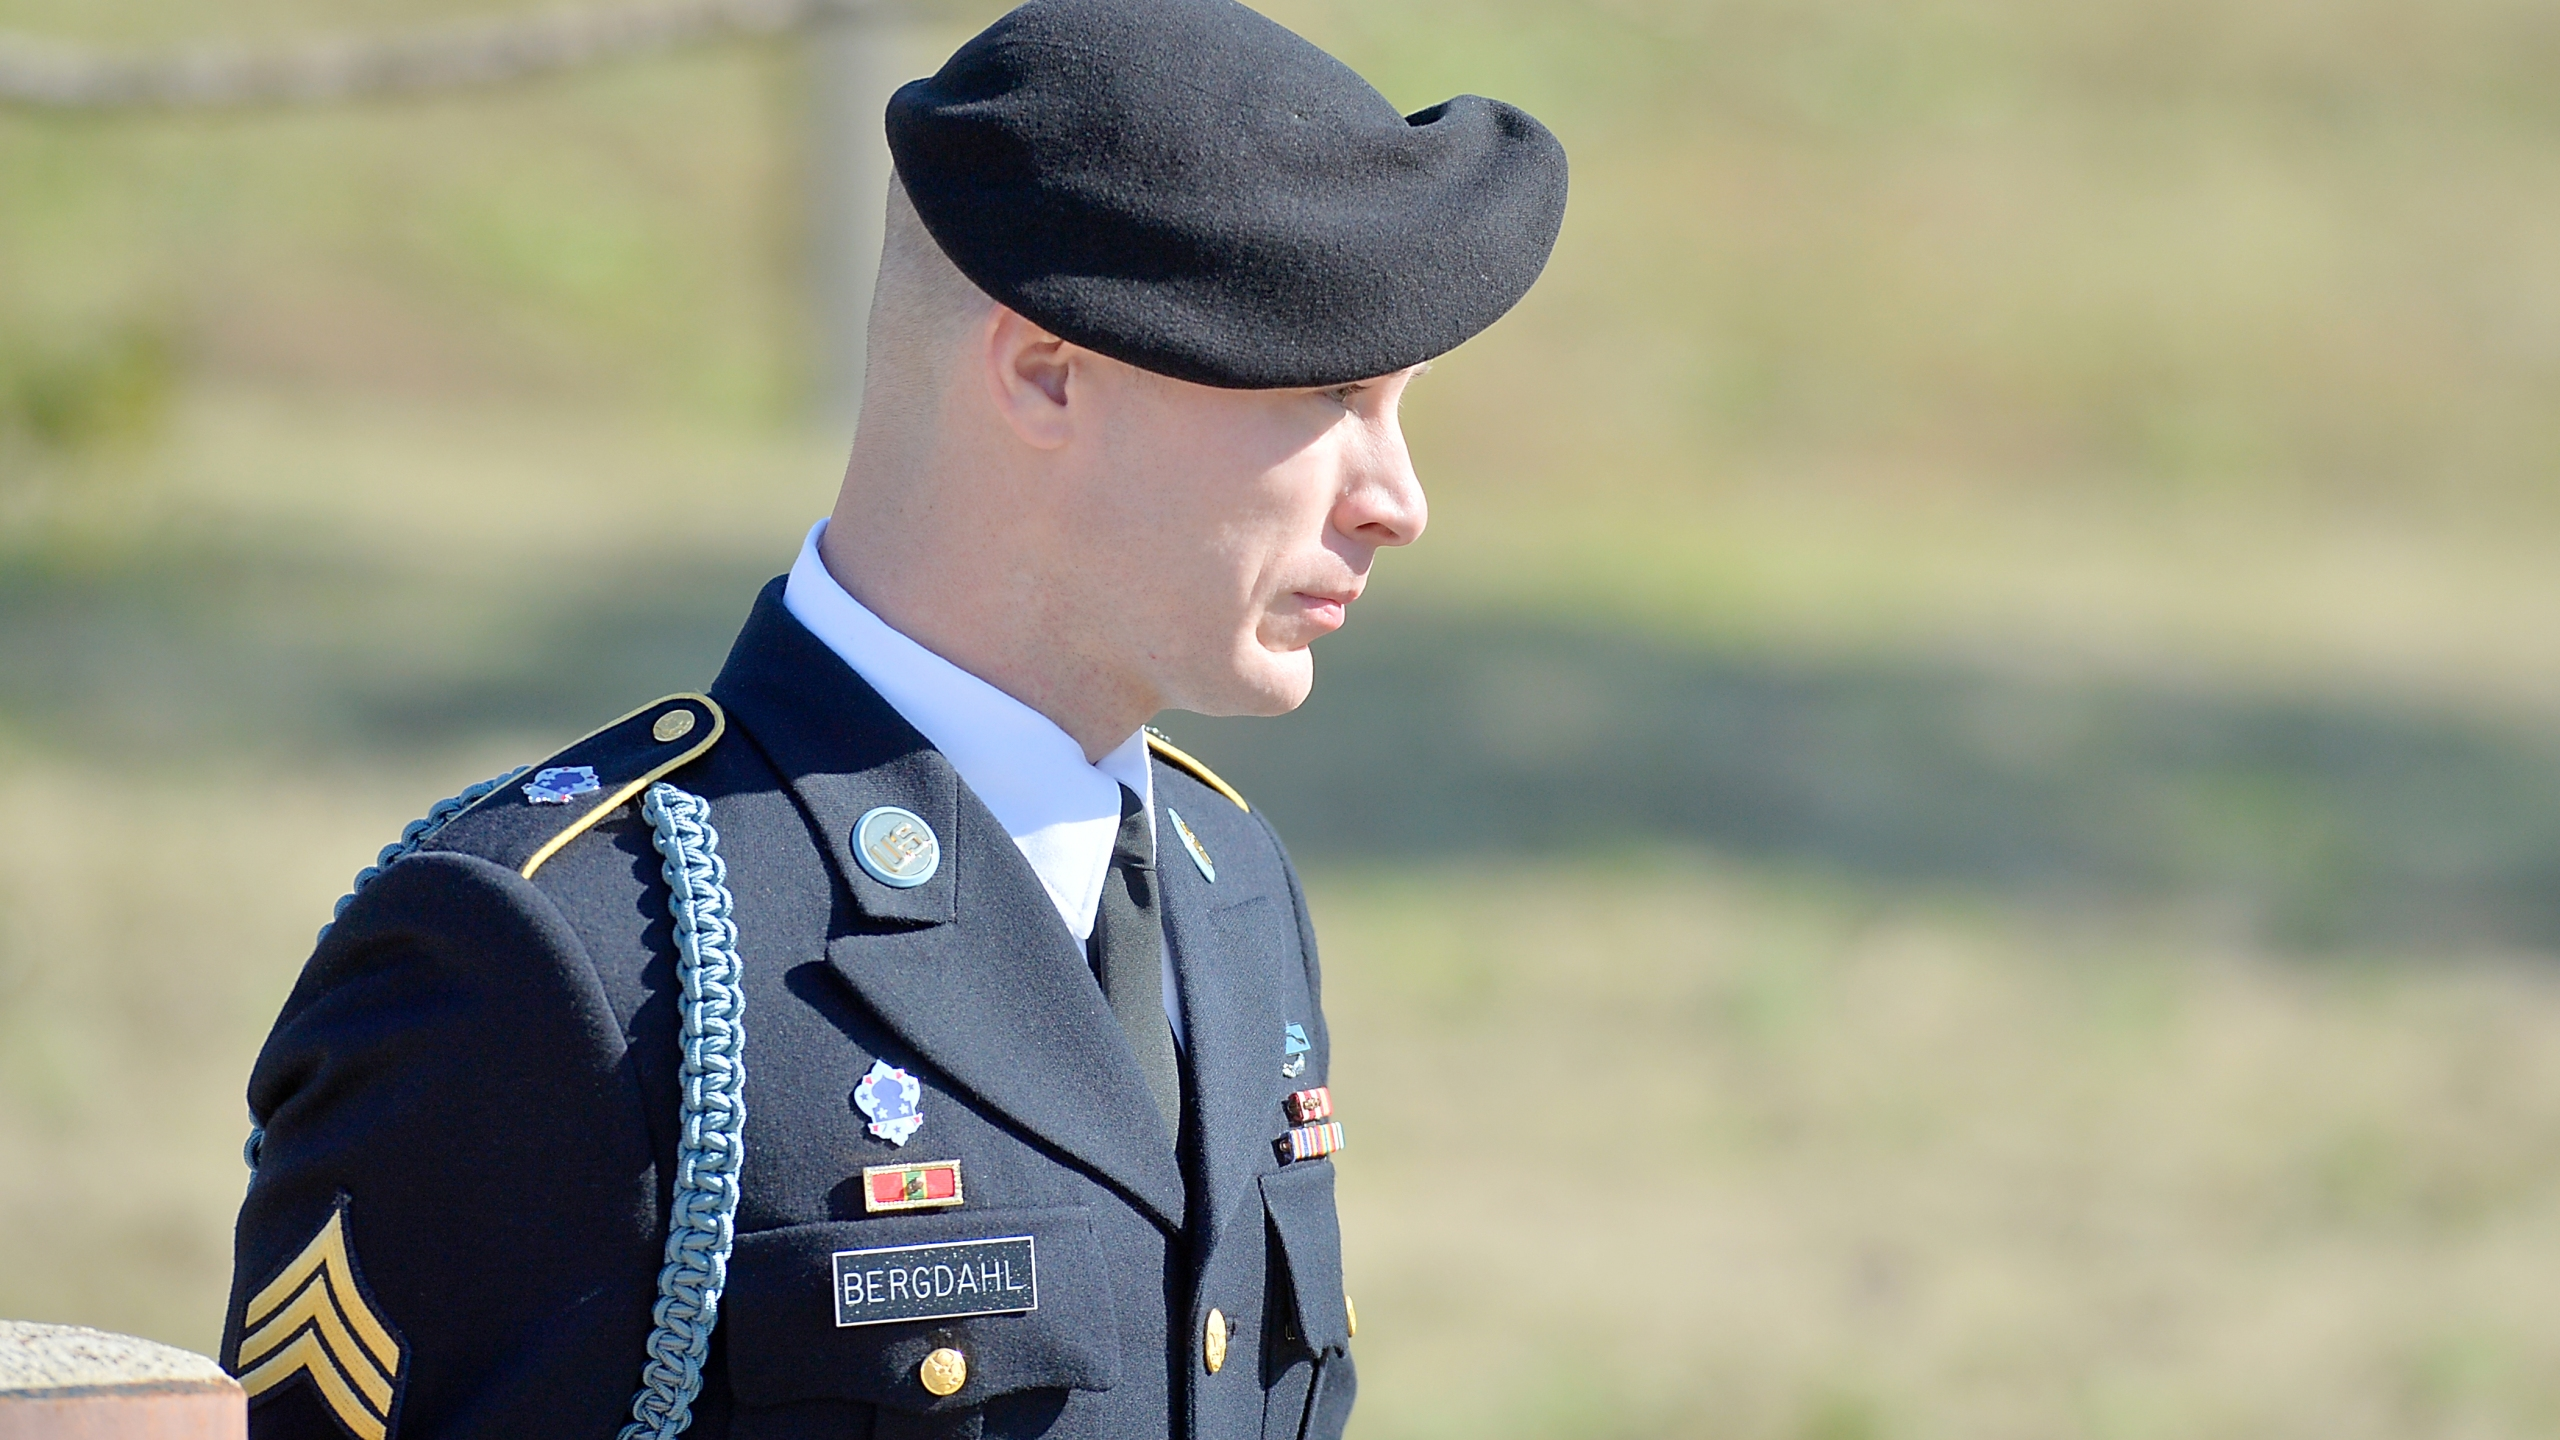 U.S. Army Sgt. Robert Bowdrie 'Bowe' Bergdahll, 29 of Hailey, Idaho, leaves the Ft. Bragg military courthouse after a pretrial hearing on January 12, 2016 in Ft. Bragg, North Carolina. (Credit: Sara D. Davis/Getty Images)